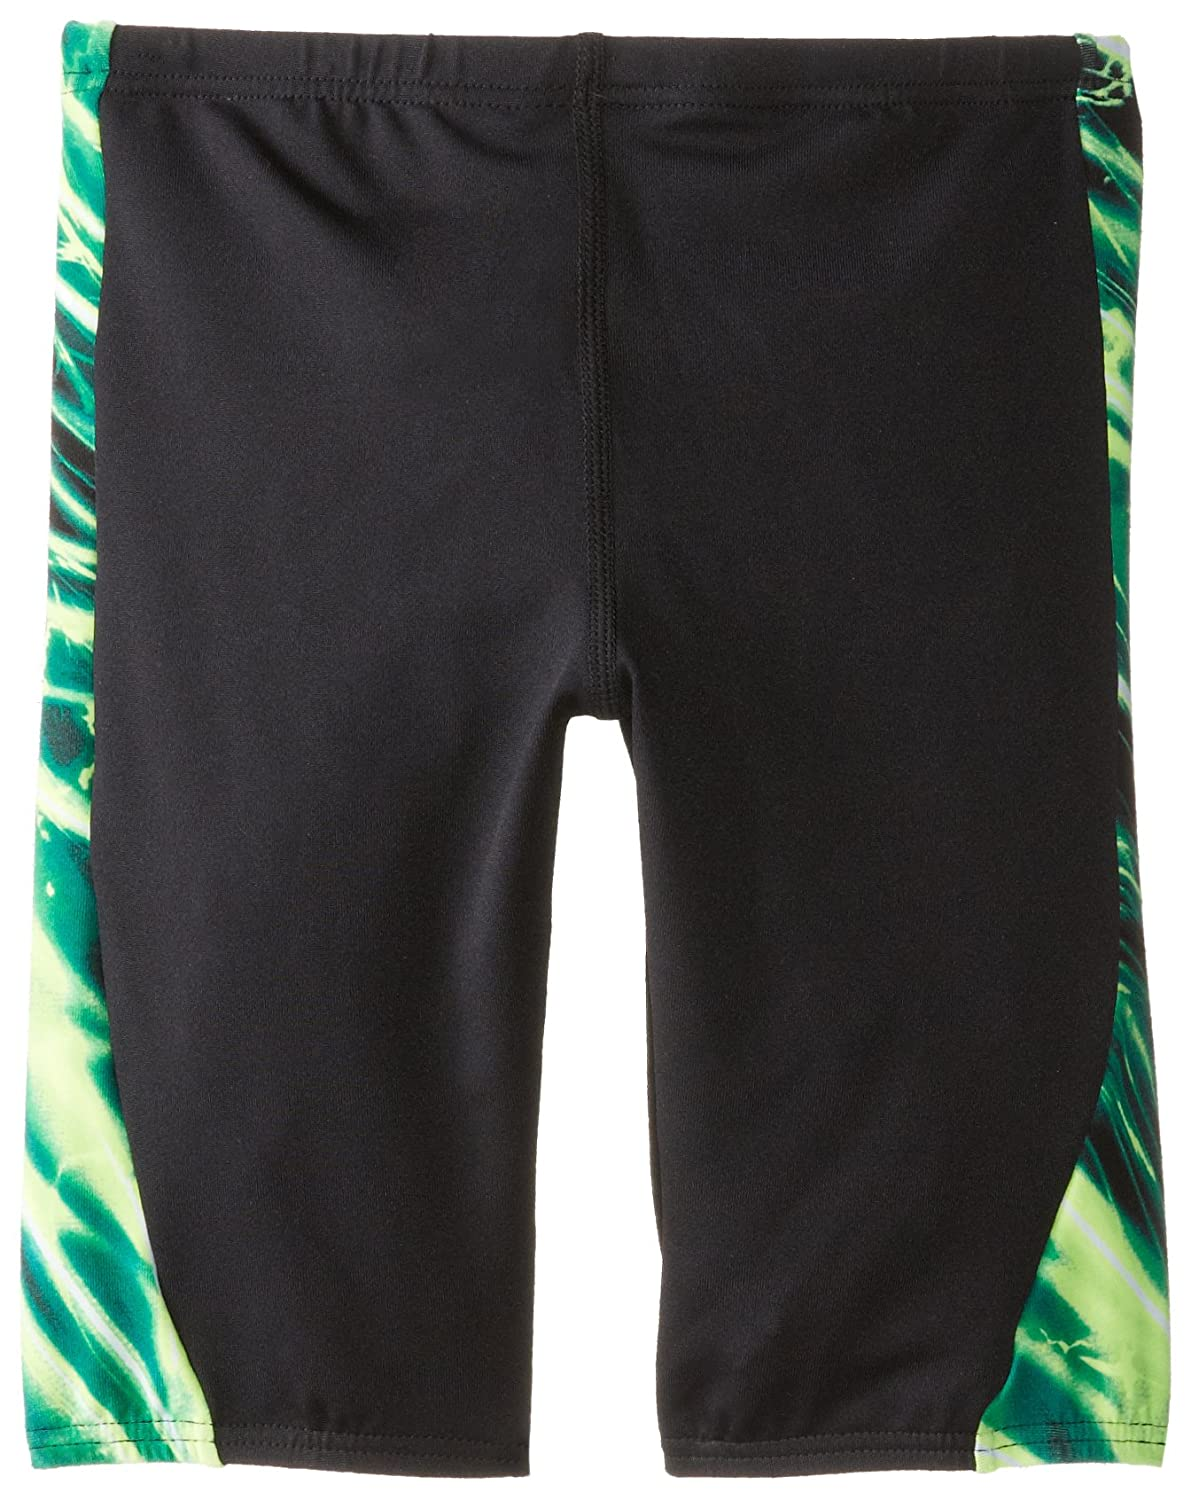 TYR SPORT Boy's Nexus Legend Splice Jammer Swimsuit TYR SPORT INC SNX7Y-P